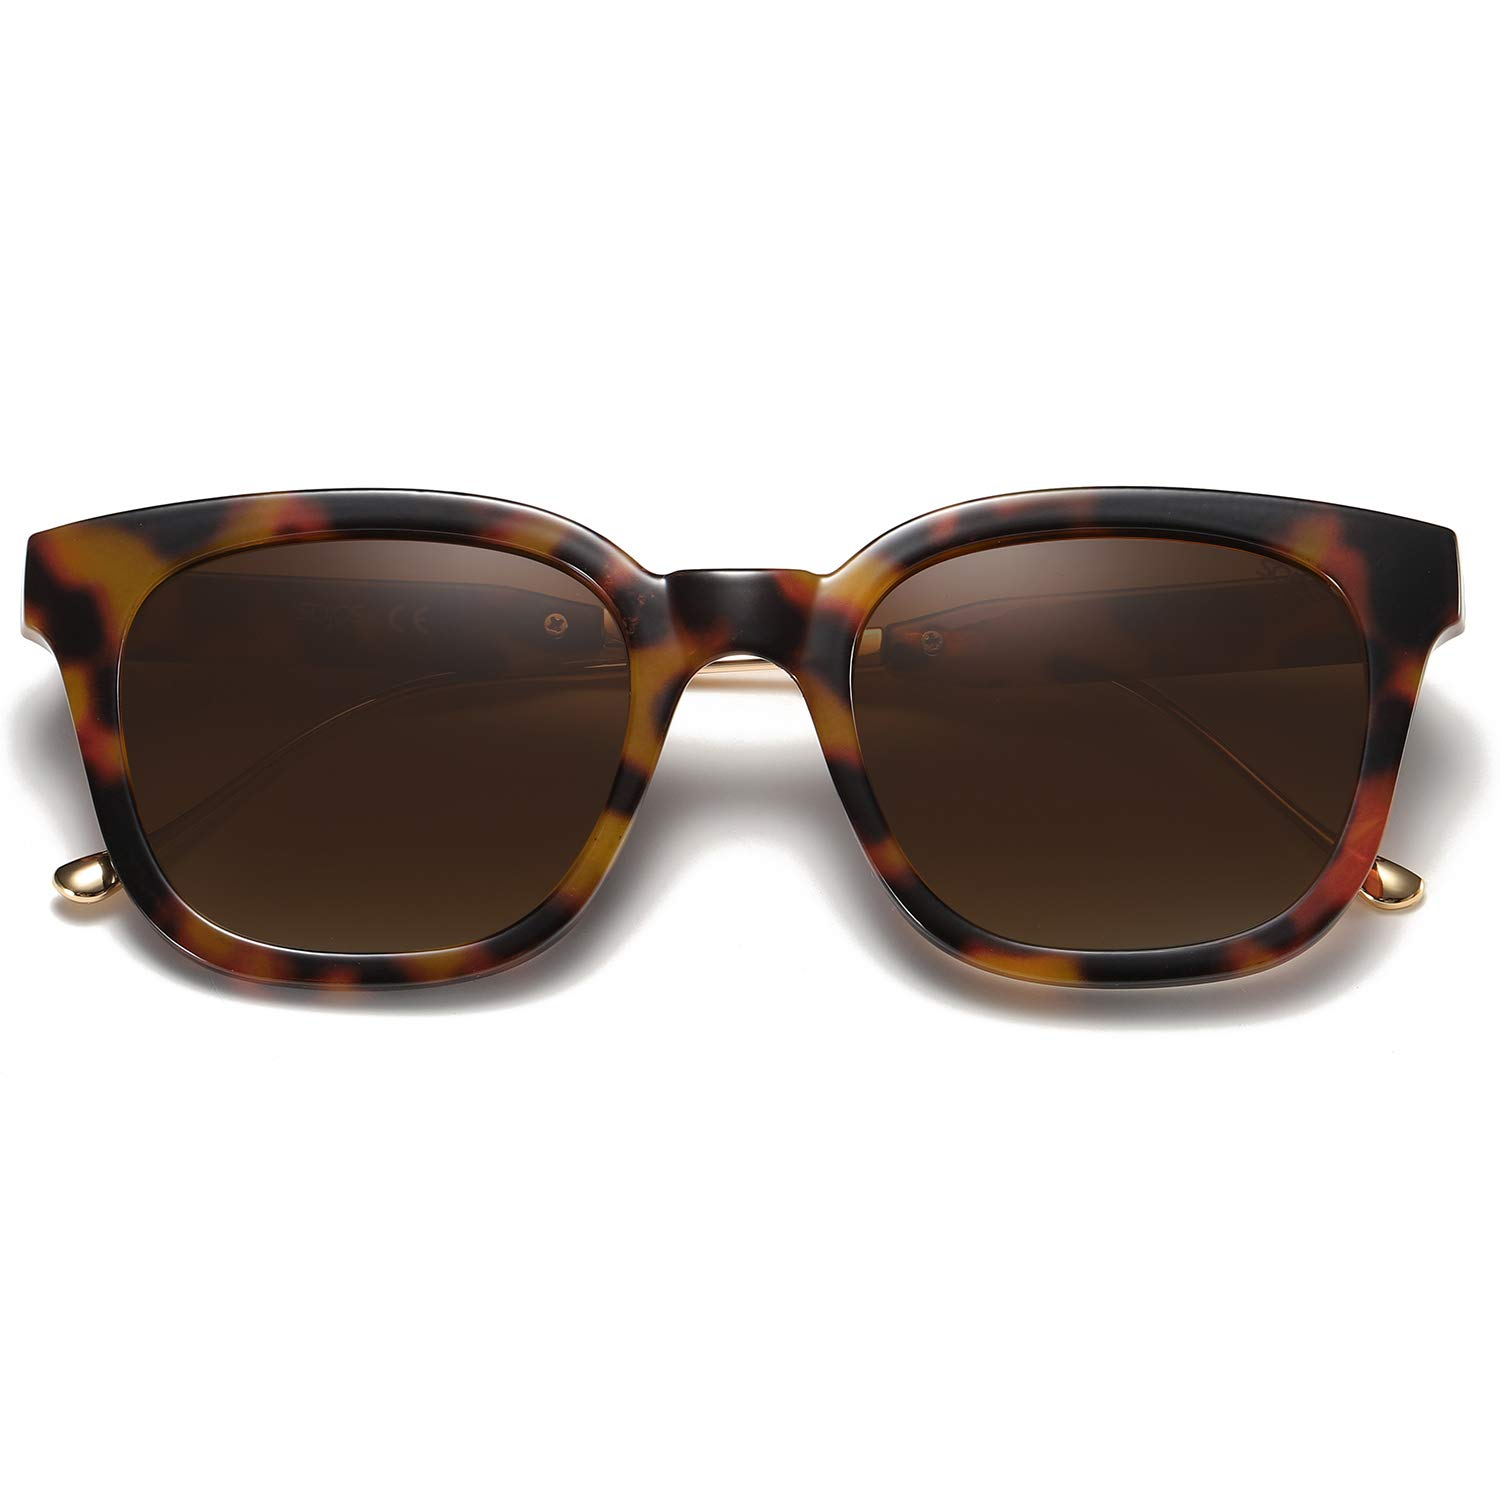 SOJOS Classic Square Polarized Sunglasses Unisex UV400 Mirrored Glasses SJ2050 with Tortoise Frame/Brown Lens by SOJOS